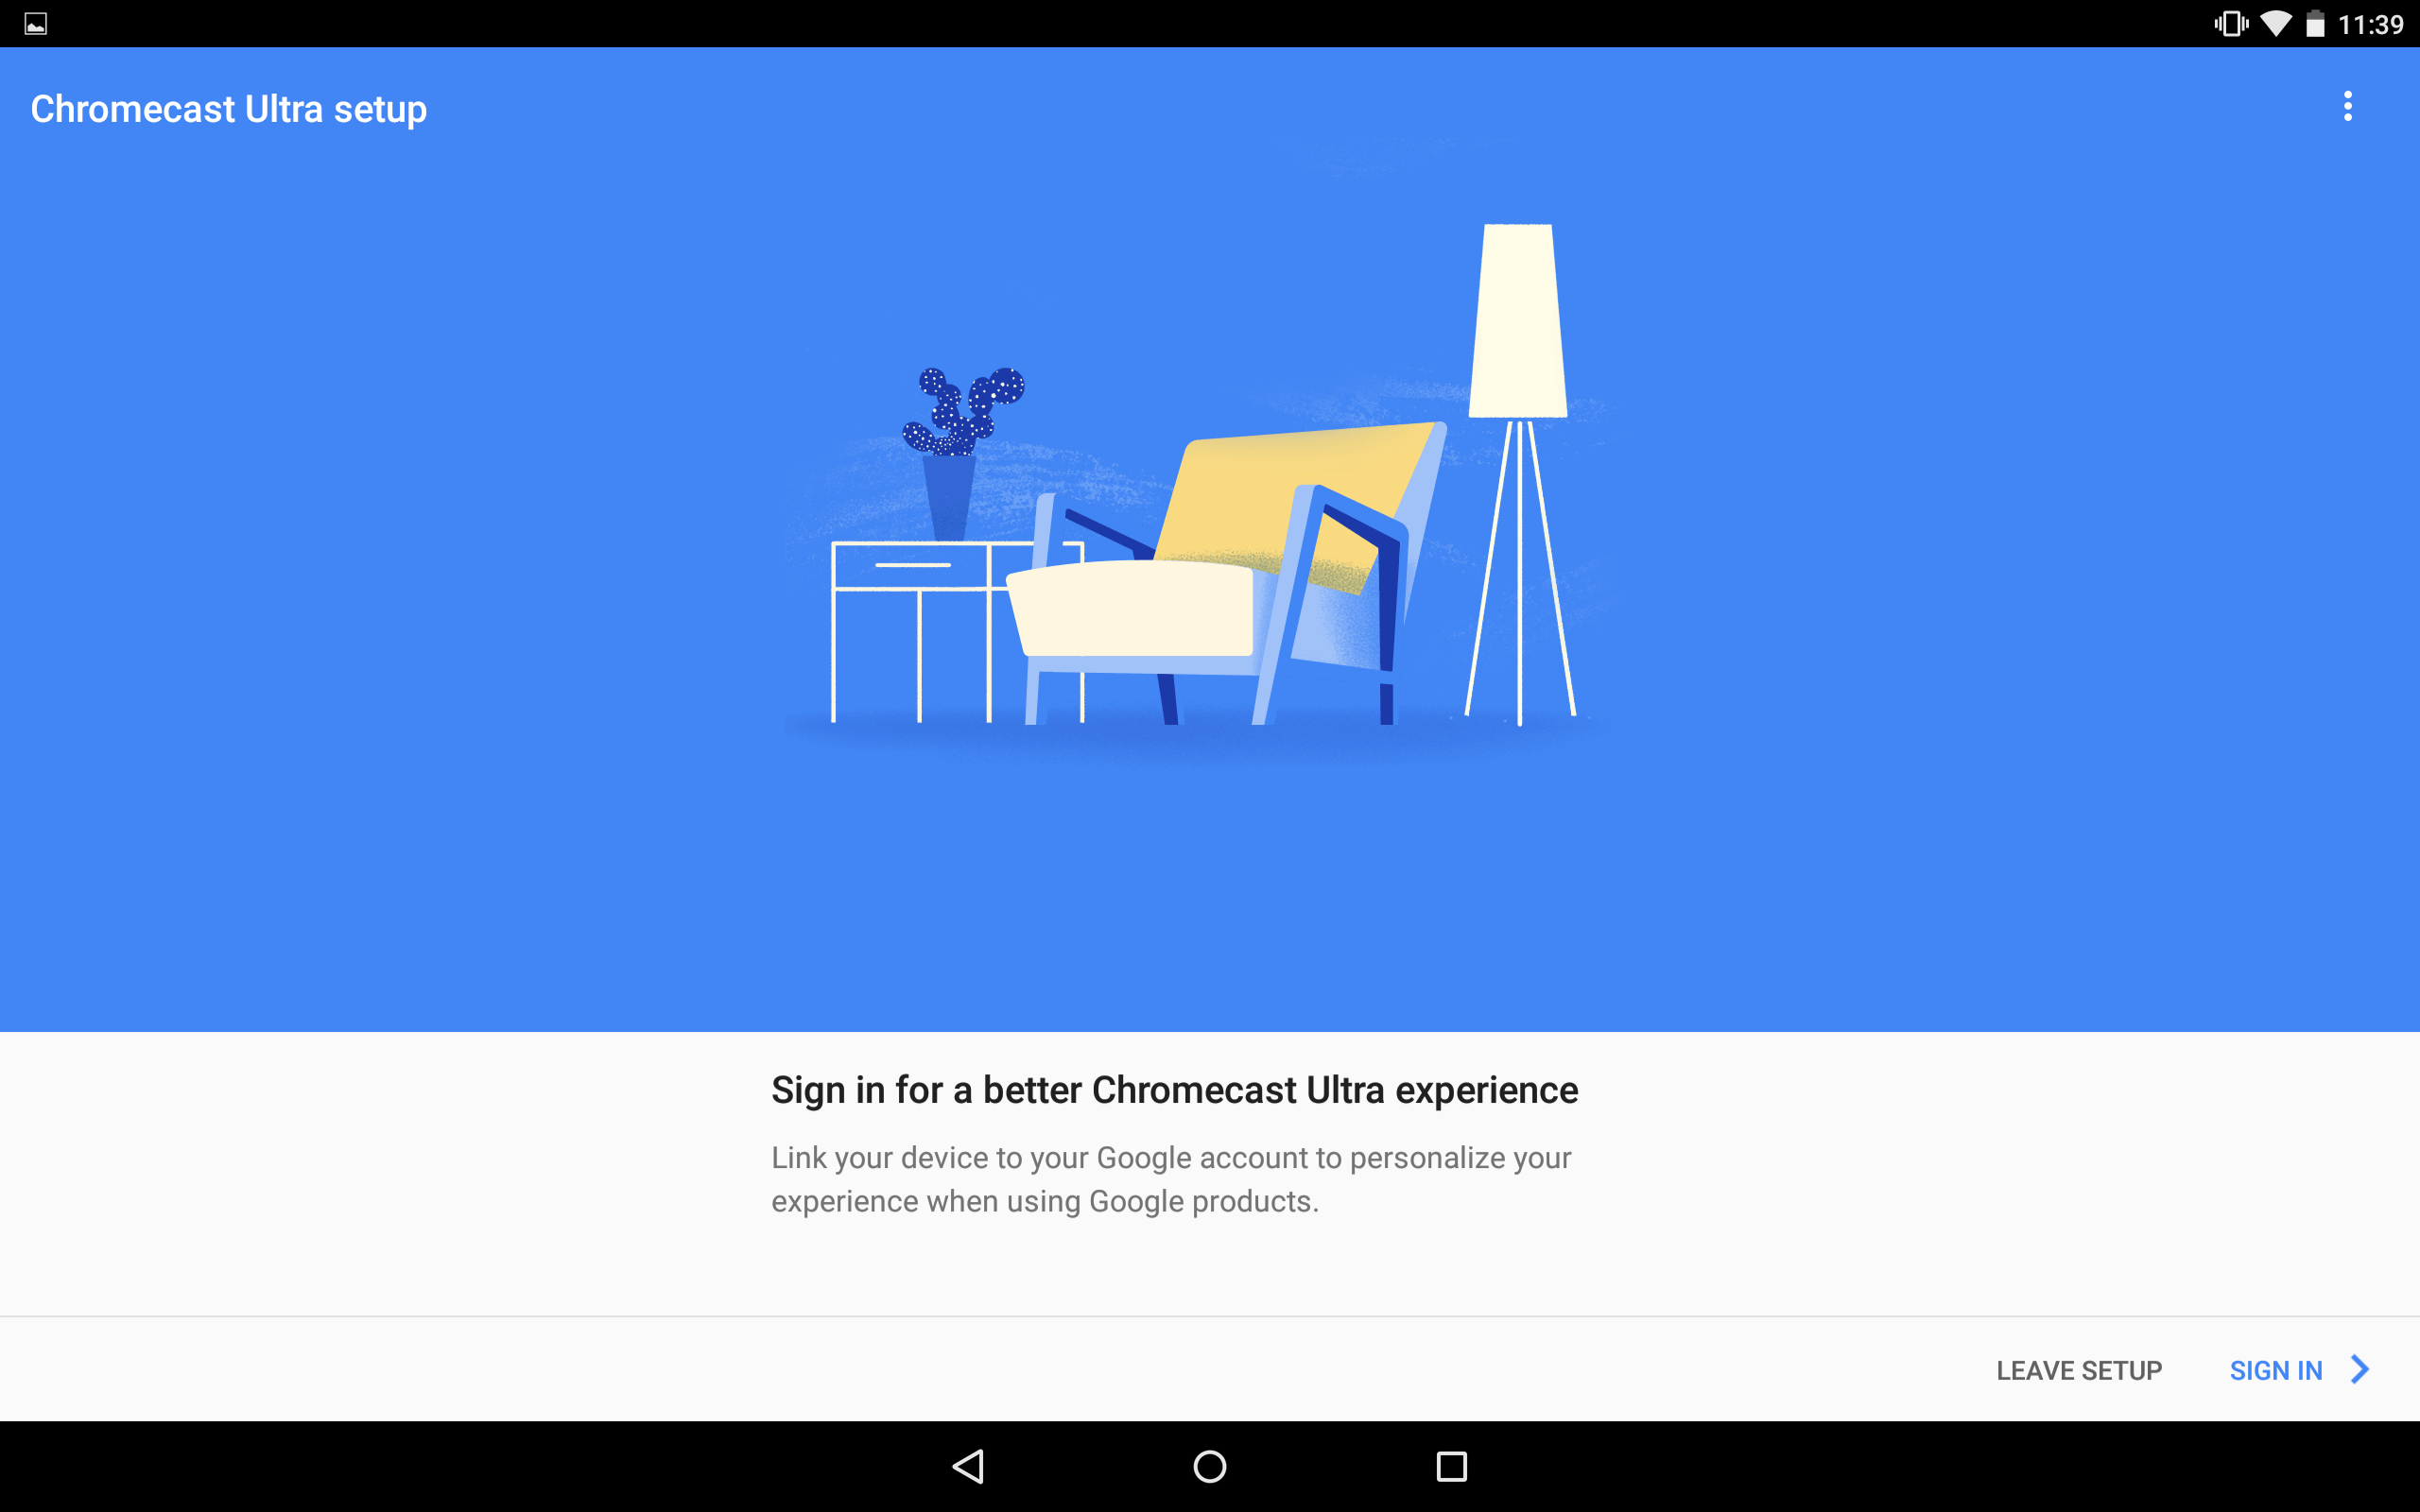 Sign into your Google Account